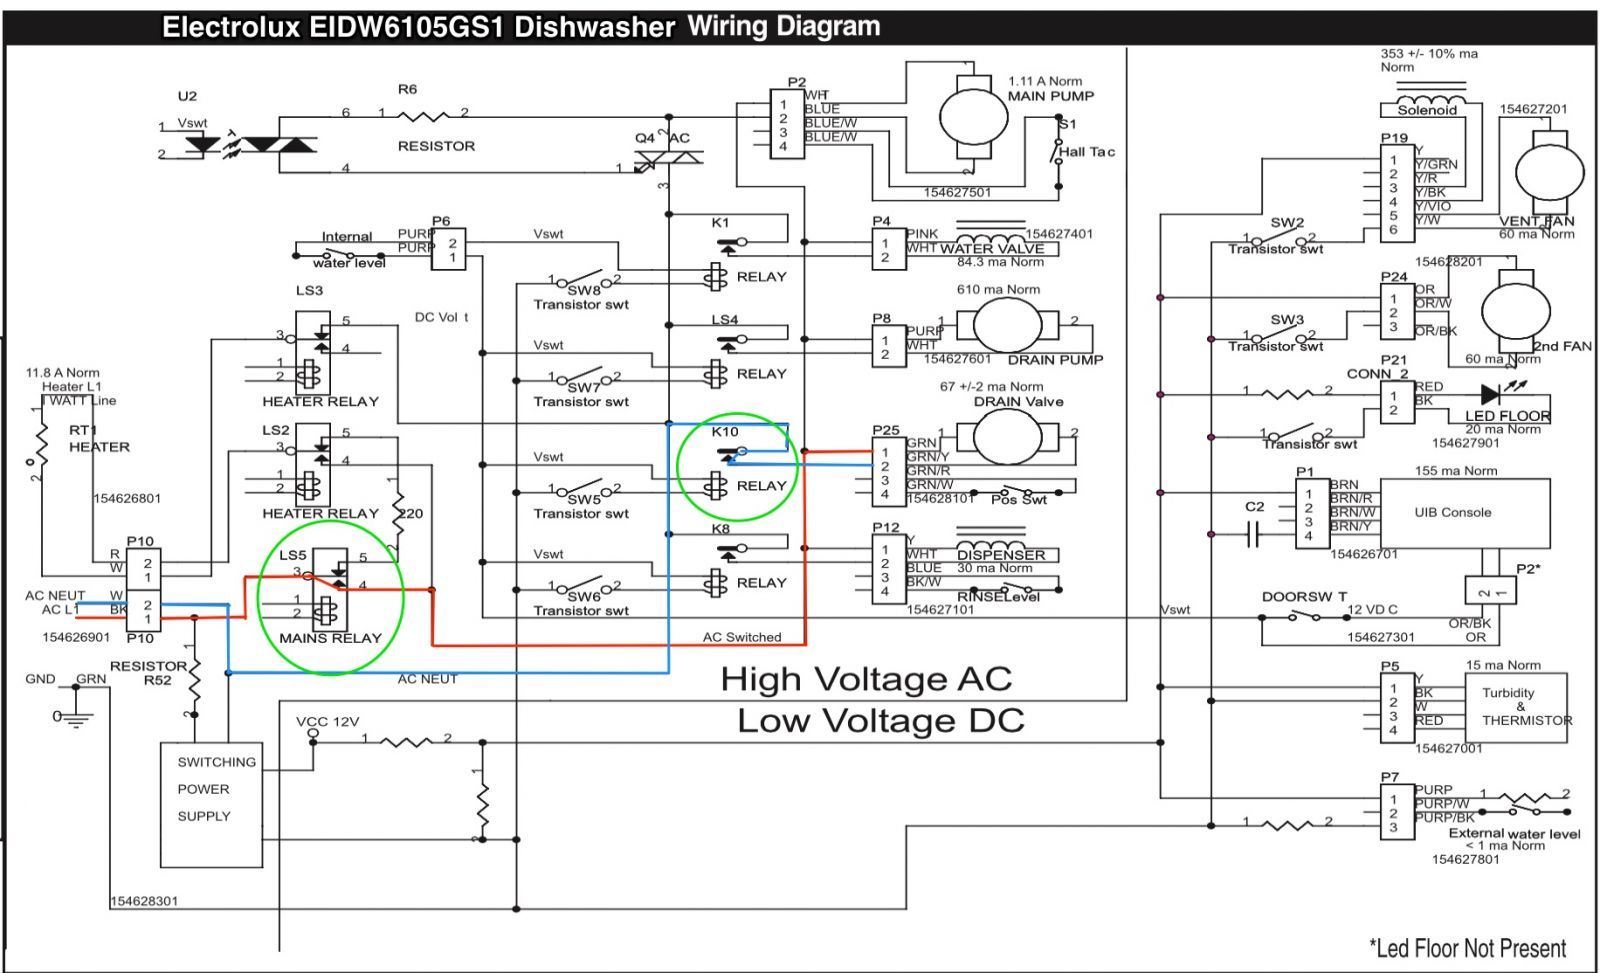 Electrolux Wiring Diagram : 25 Wiring Diagram Images